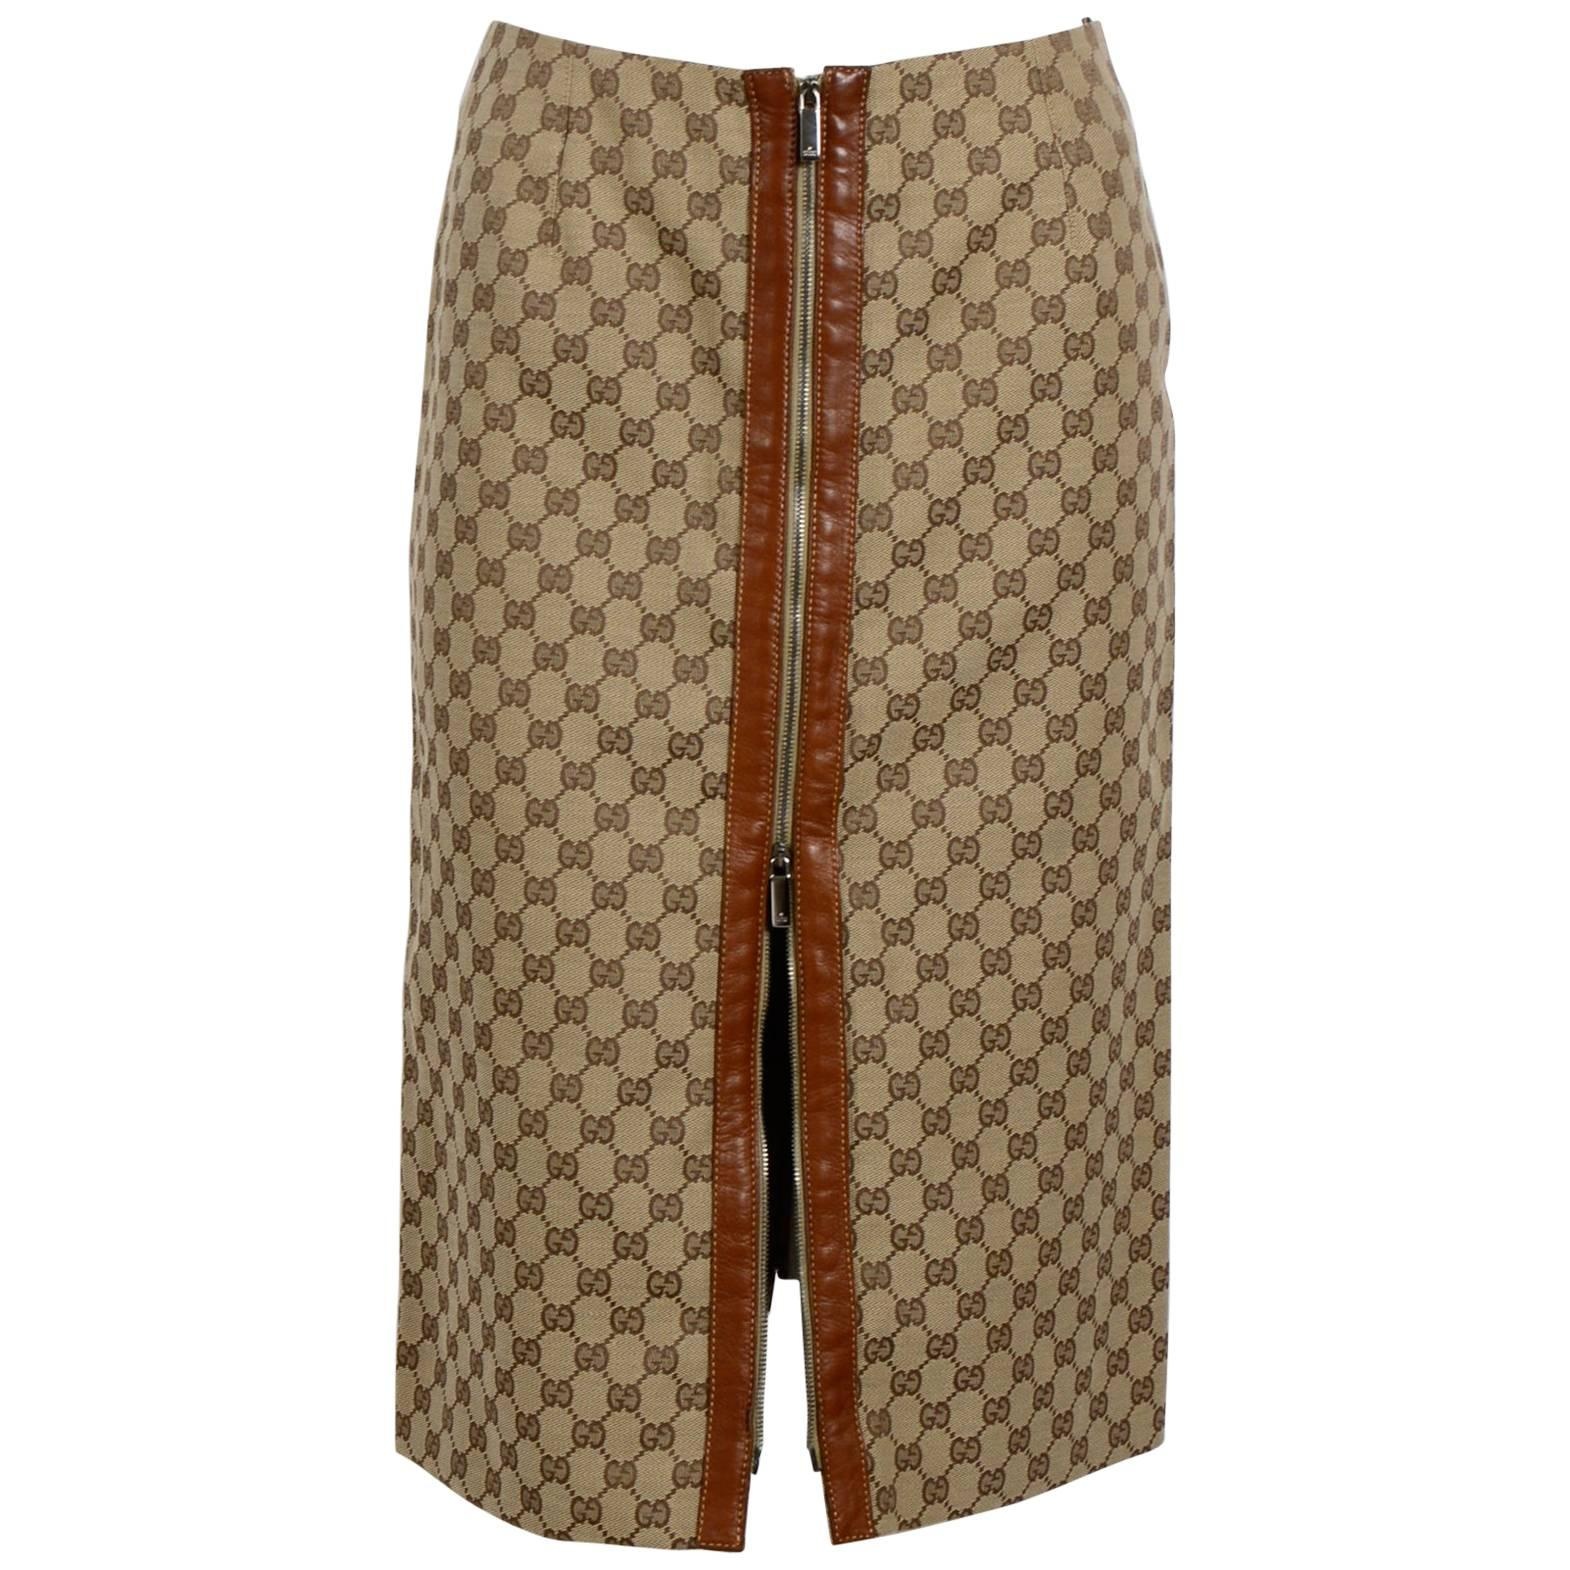 GUCCI Skirt Camel Hair Leather Trim Front Zipper 40 / 6 Nwt For Sale at  1stdibs